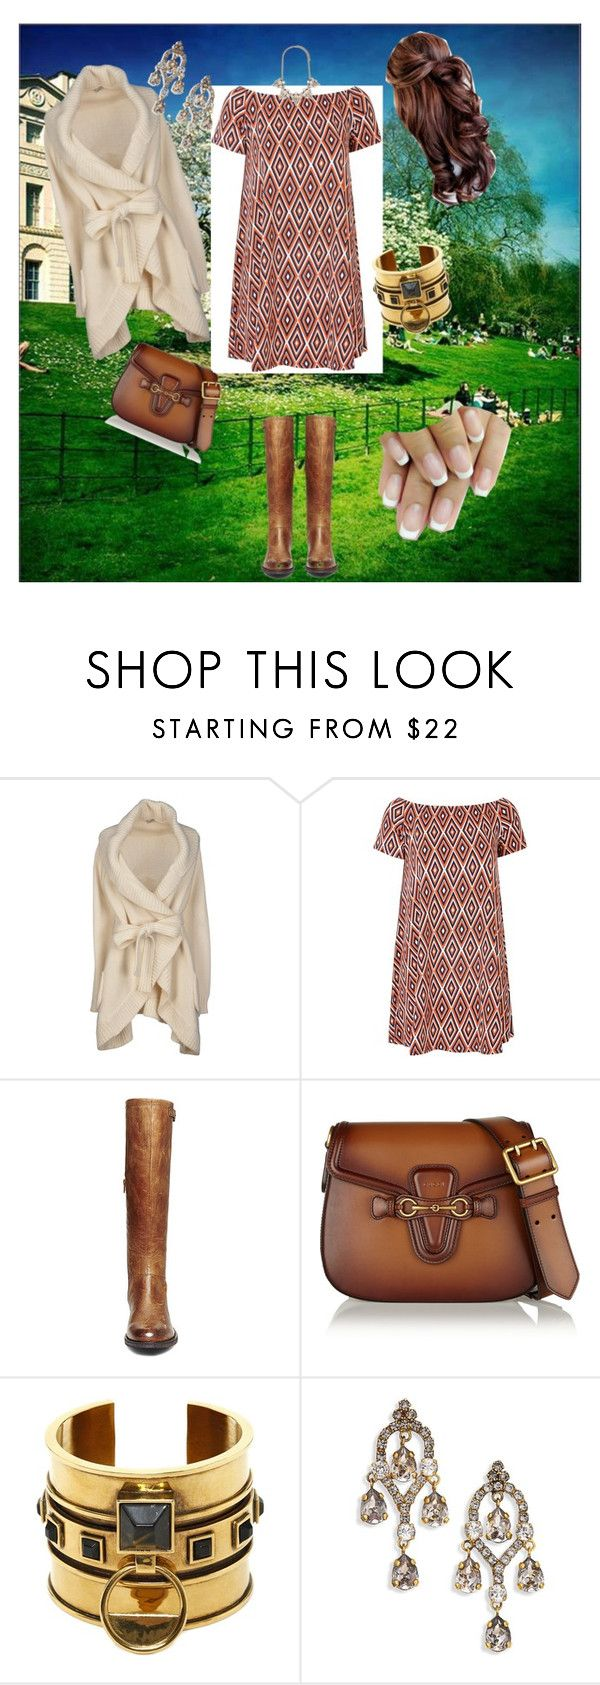 """Early spring"" by boopreski ❤ liked on Polyvore featuring Le Ragazze Di St. Barth, Glamorous, Steve Madden, Gucci, Alexander McQueen, Erickson Beamon and Forever 21"